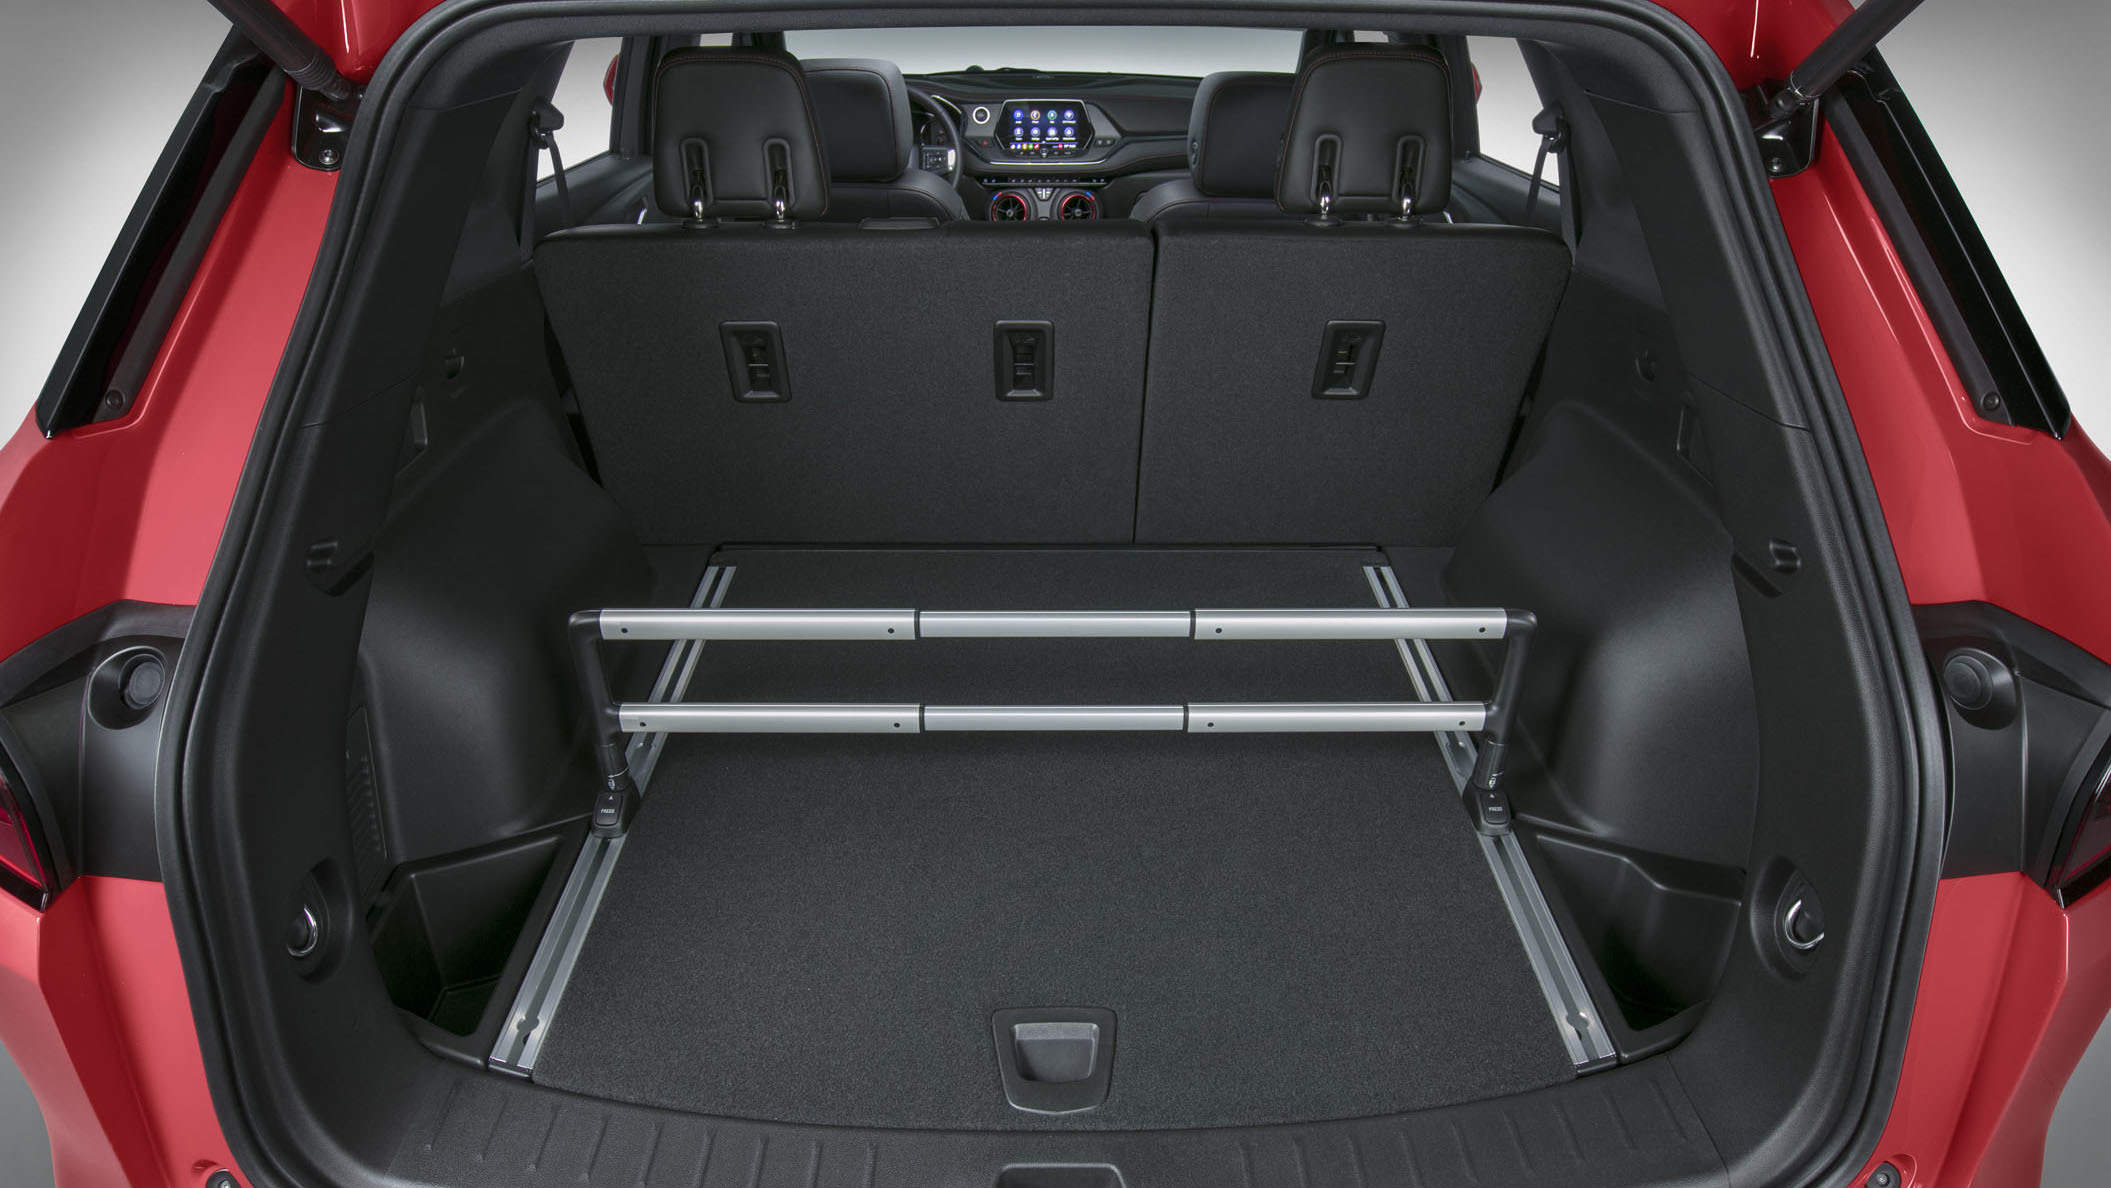 The 2019 Chevrolet Blazer offers a Chevrolet-first Cargo Management System which helps drivers secure smaller items by dividing the cargo area.